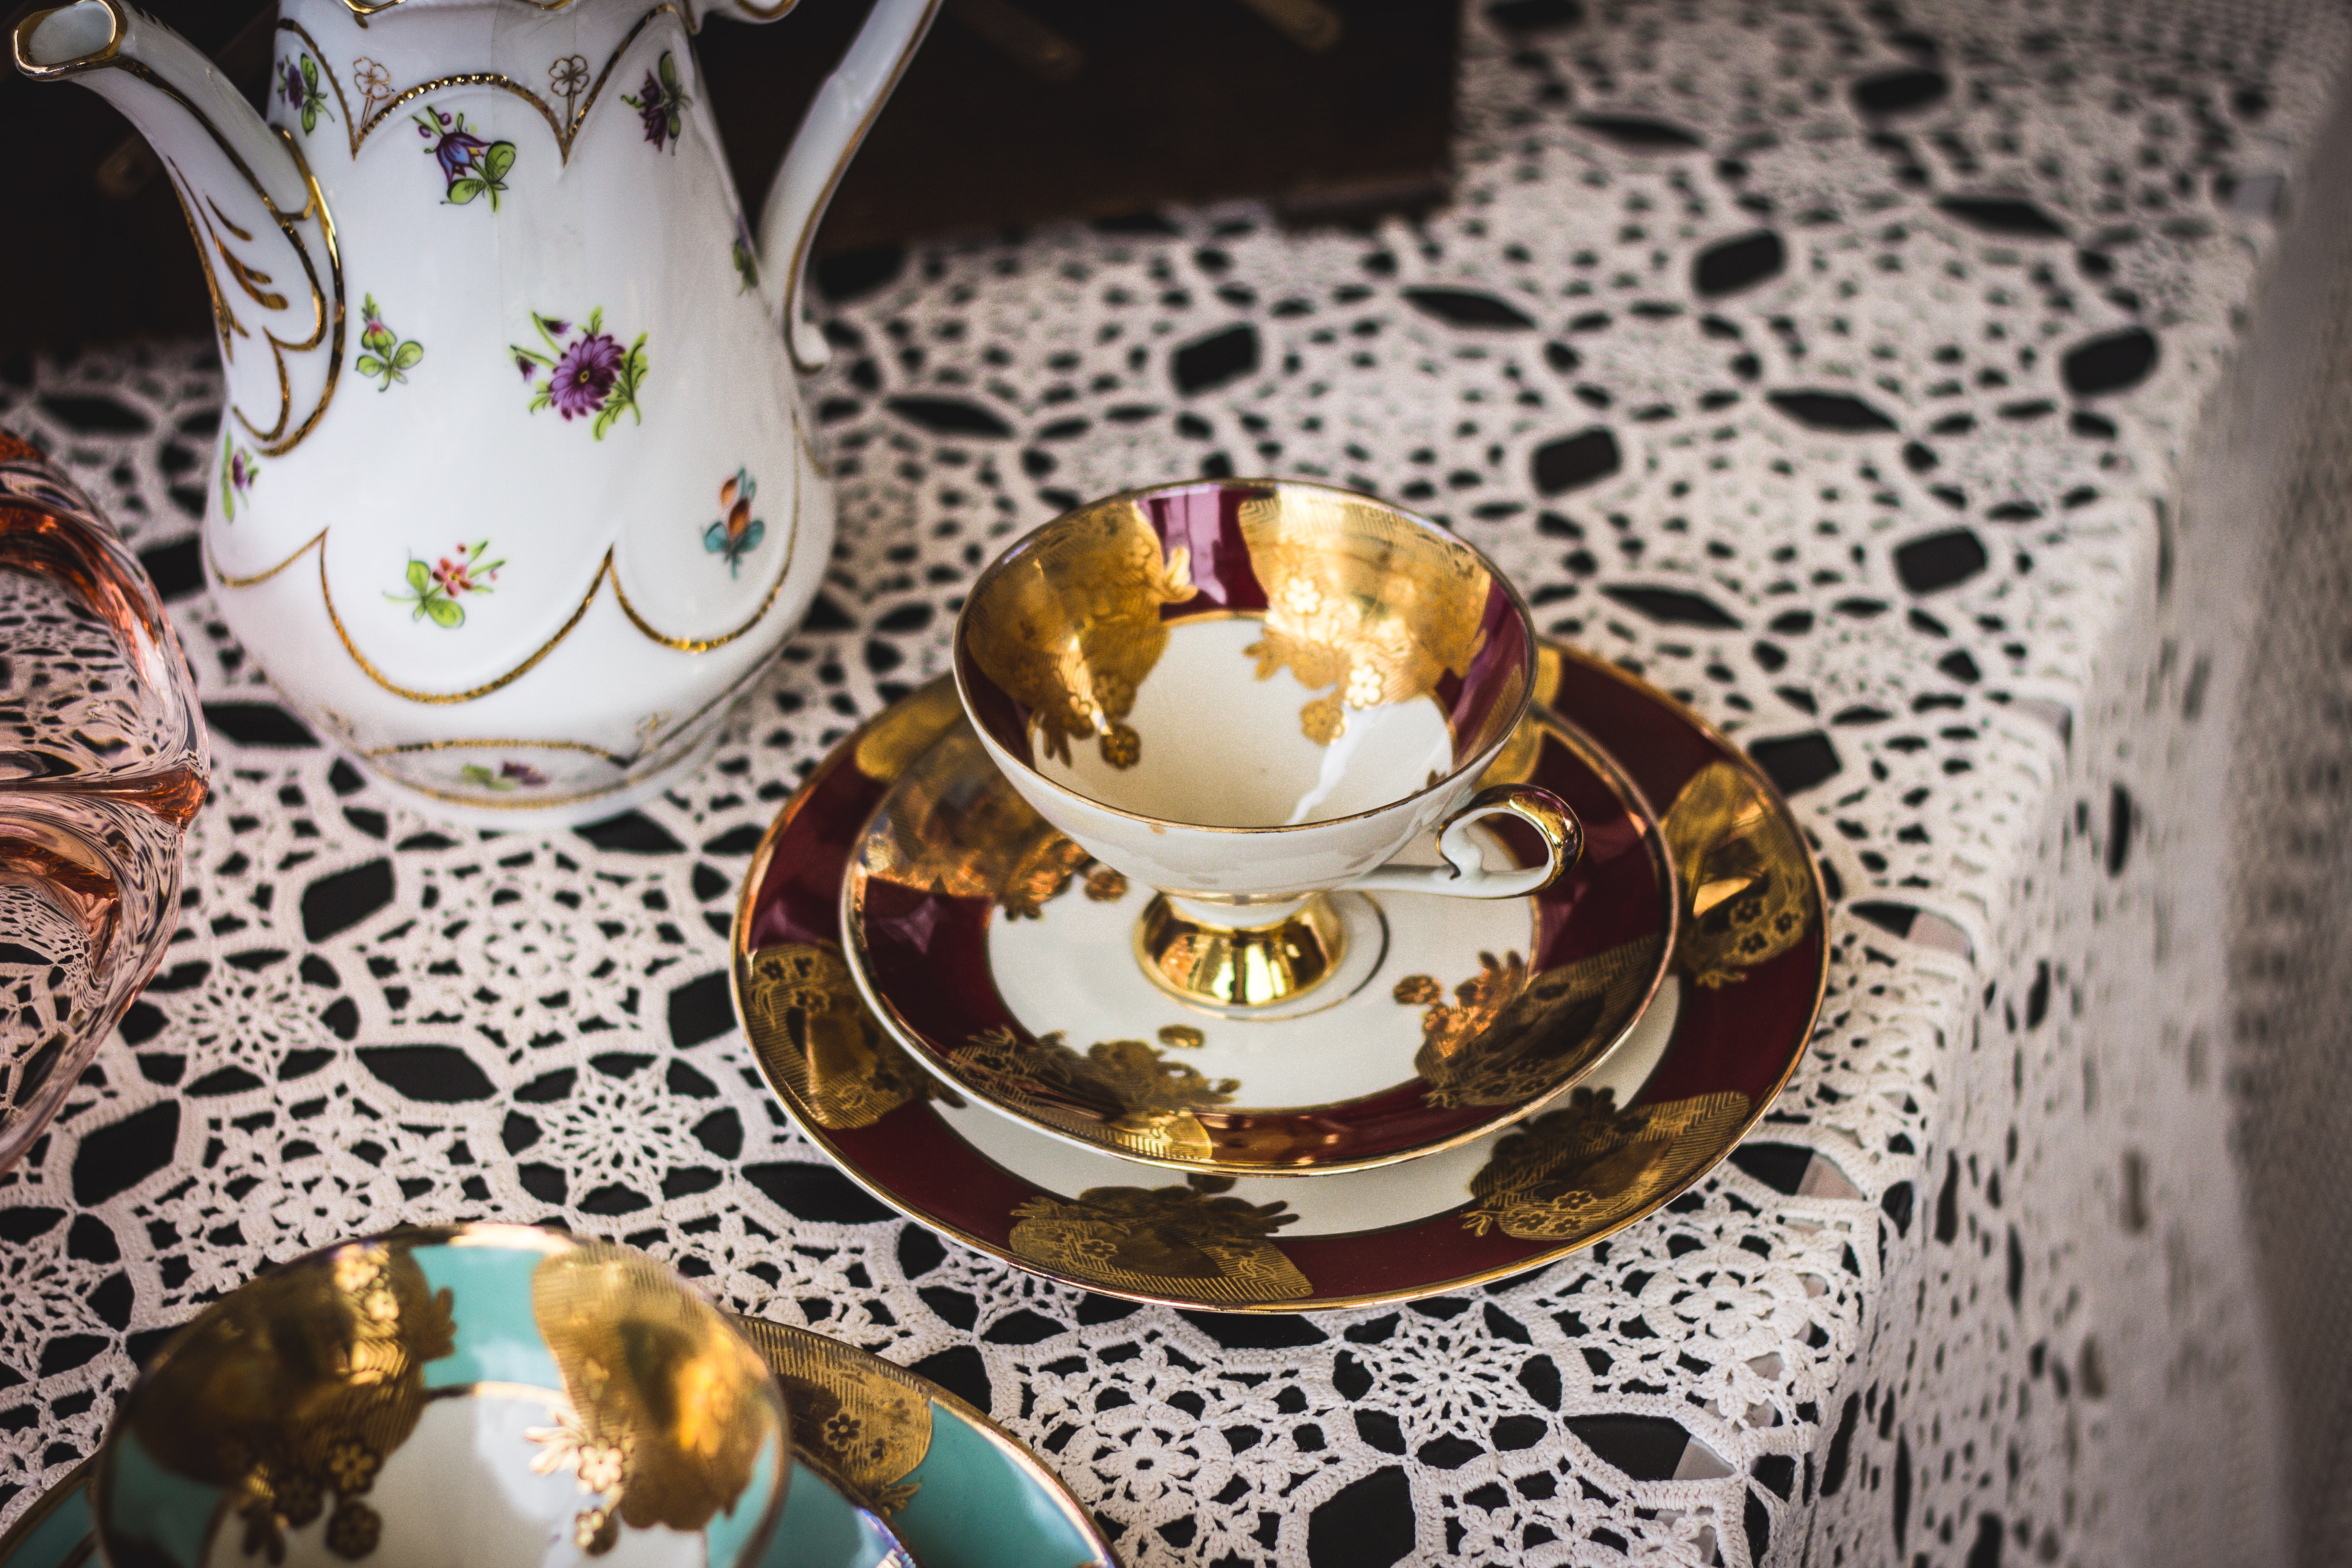 gold and white tea cup on saucer